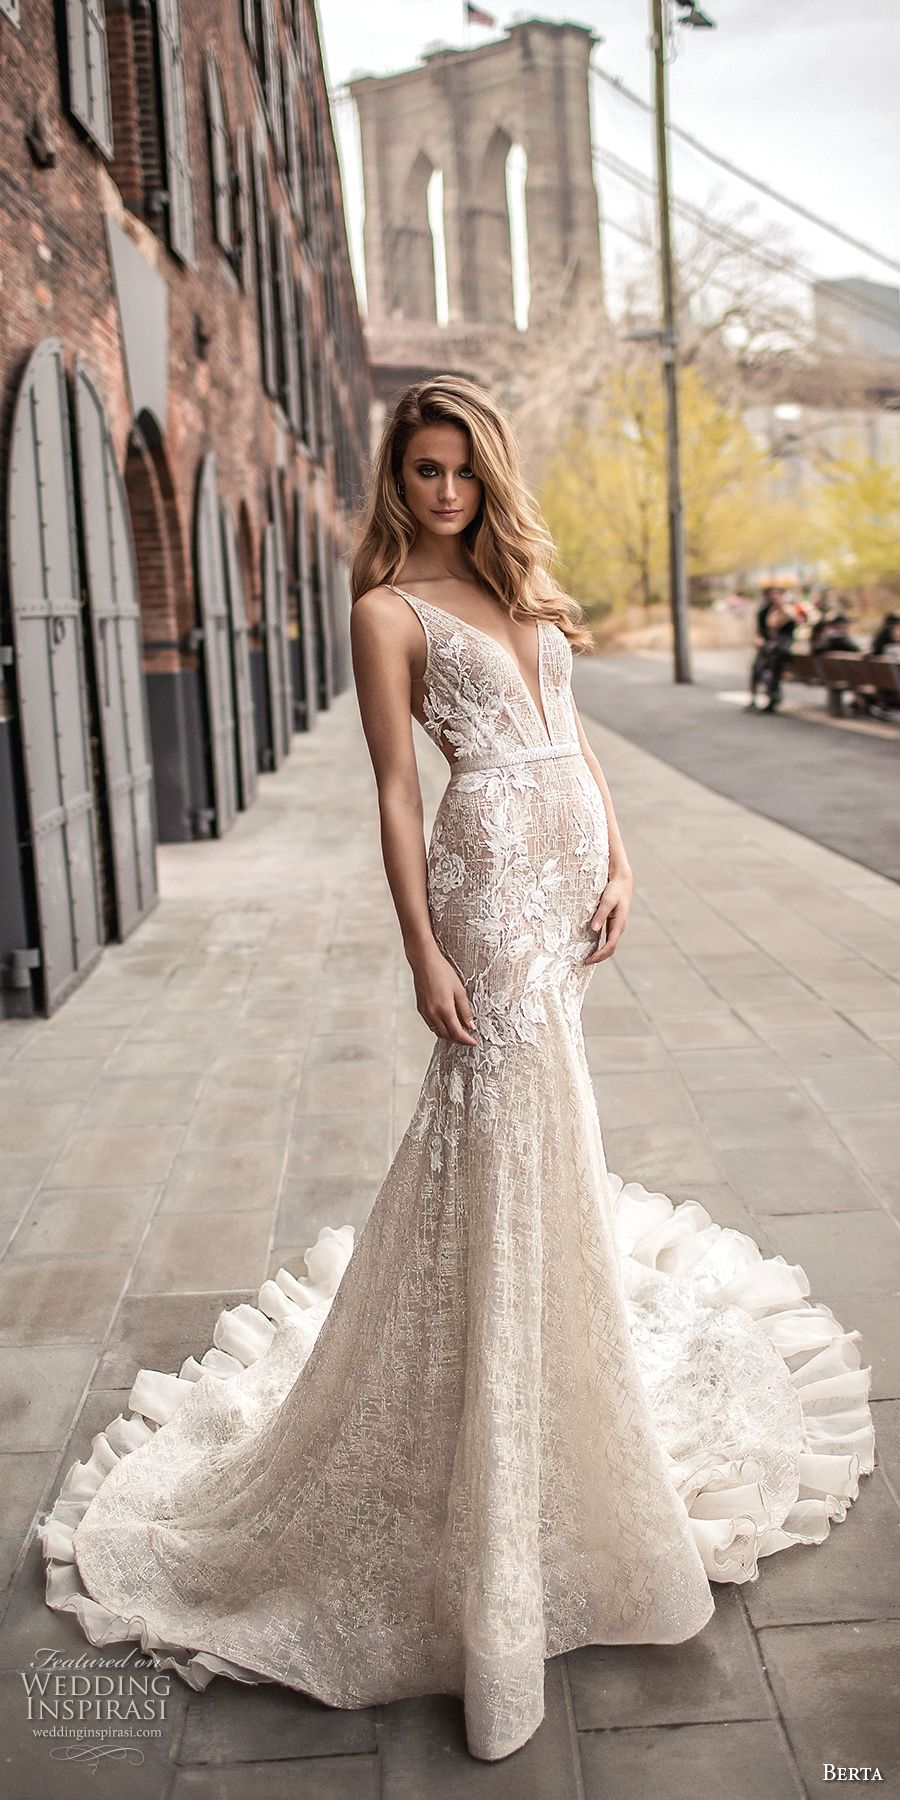 berta spring 2018 bridal sleeveless deep plunging v neckline full  embellishment sexy elegant fit and flare wedding dress open low back chapel  train (7) mv ... c76709c7b